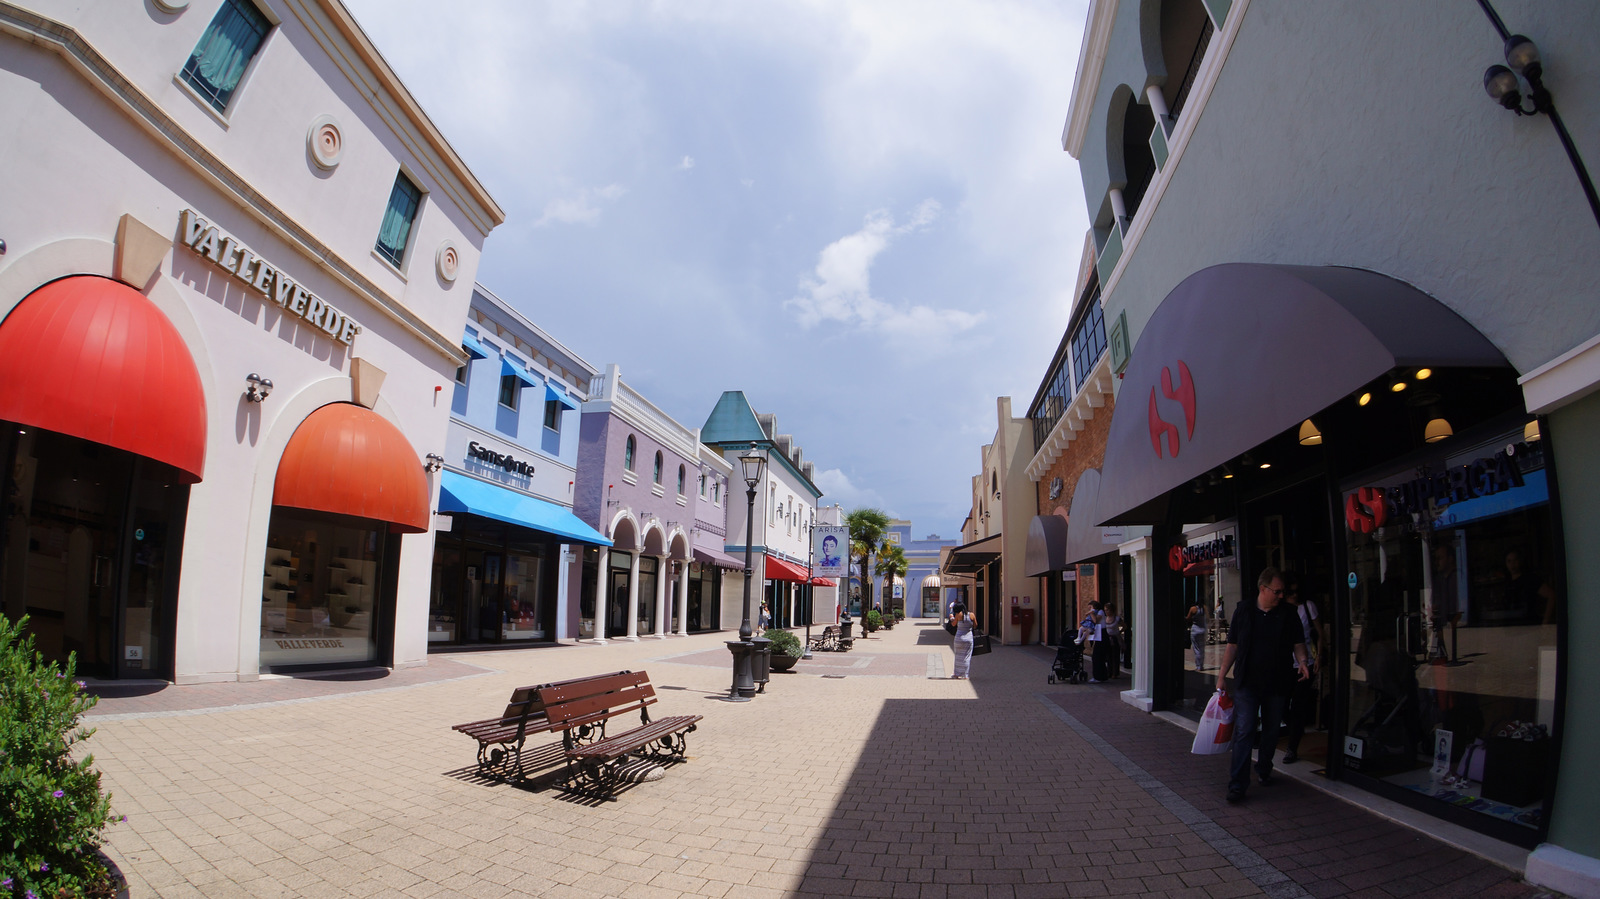 Valmontone Fashion District Outlet - Outlet Malls From valmontone fashion district